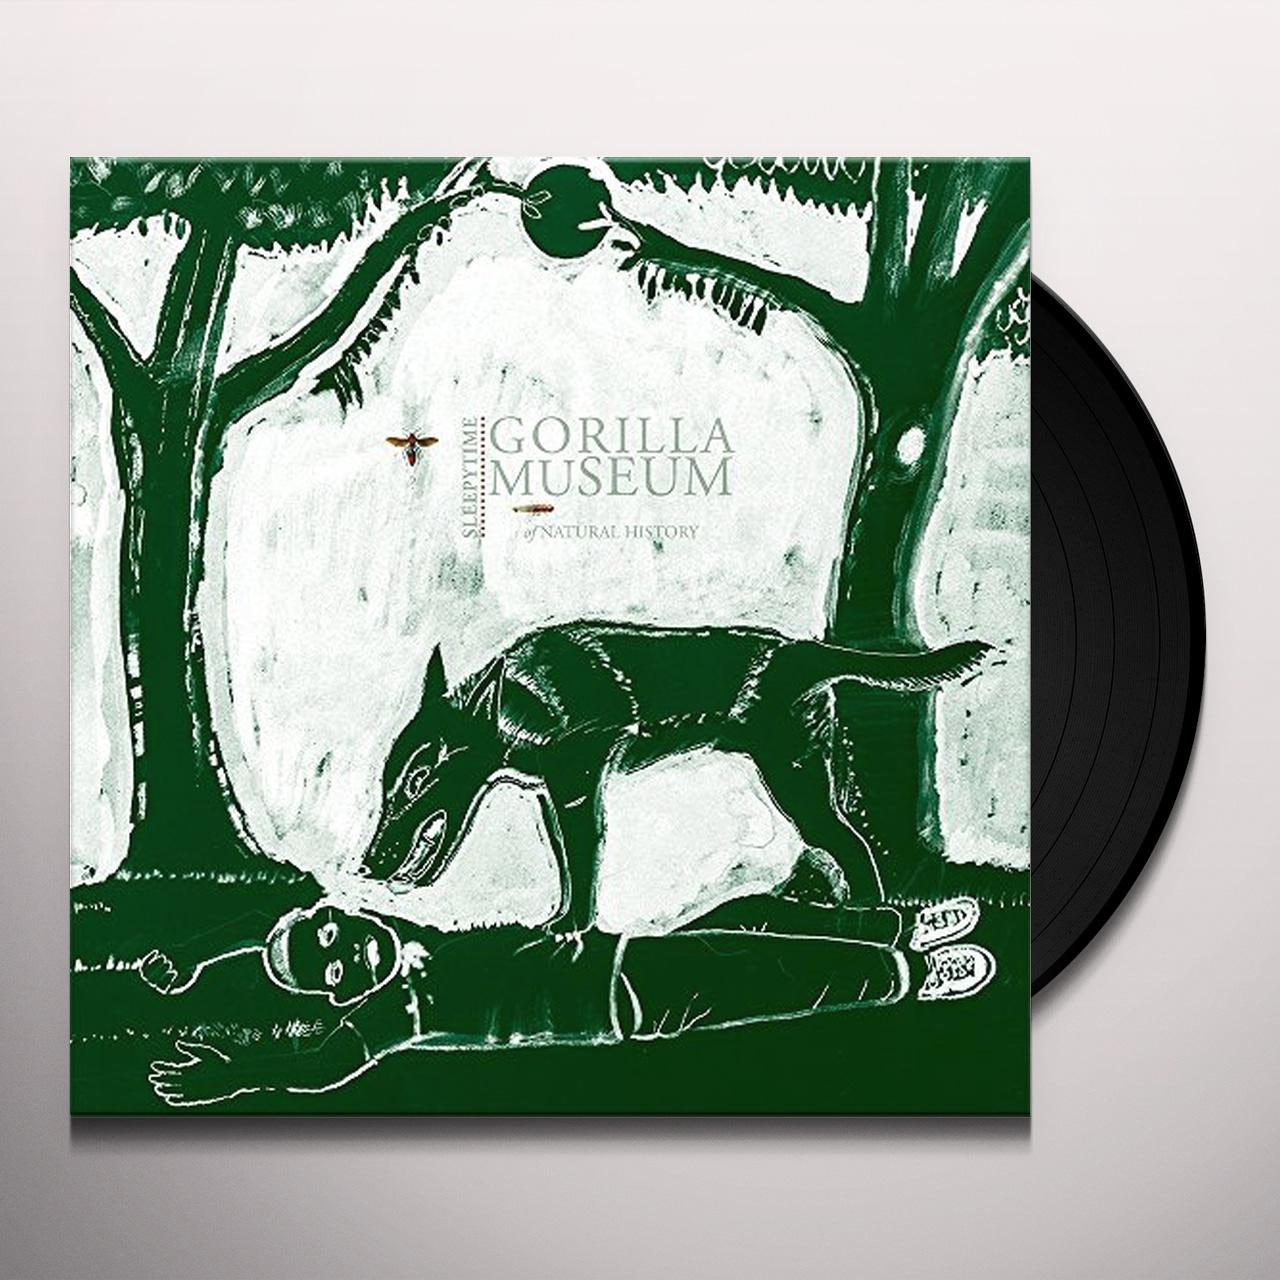 Sleepytime Gorilla Museum OF NATURAL HISTORY Vinyl Record